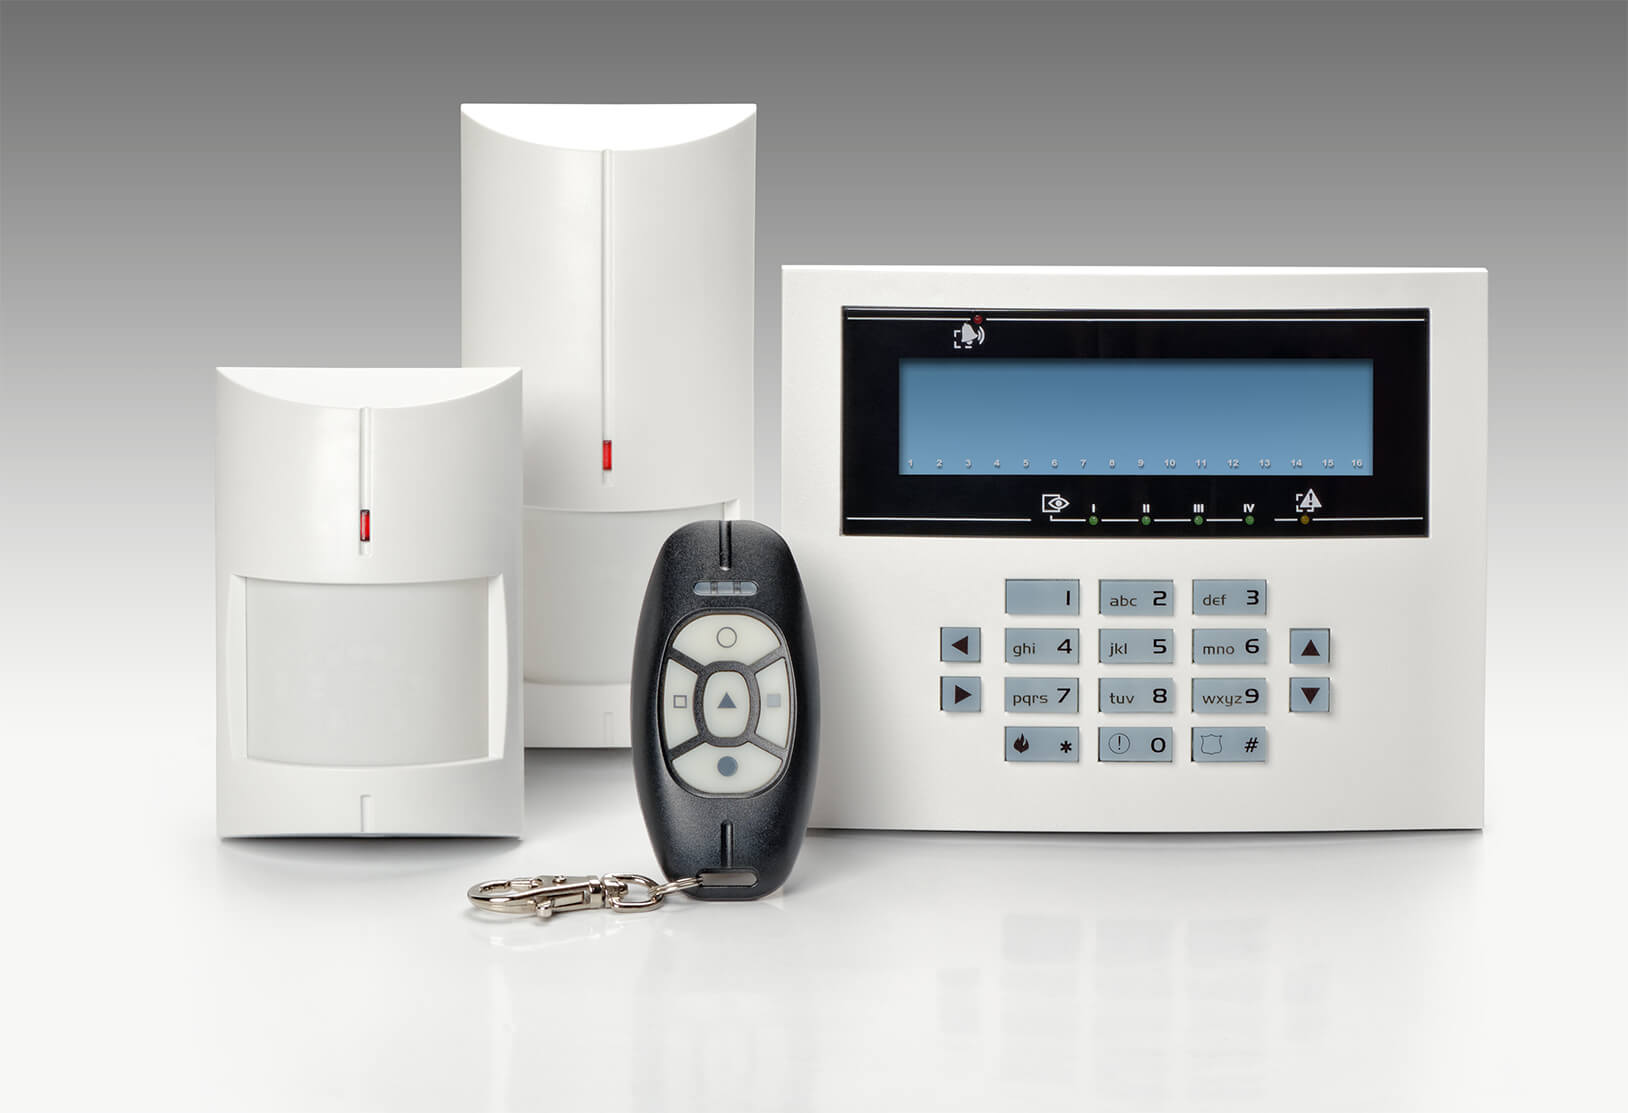 Business & Residential NACOSS Approved Burglar Alarms In Barnes SW15 - Local Barnes SW15 security company.Call 02078872244 - Dedicated to Safety & Security. Companies, shops and homes ..